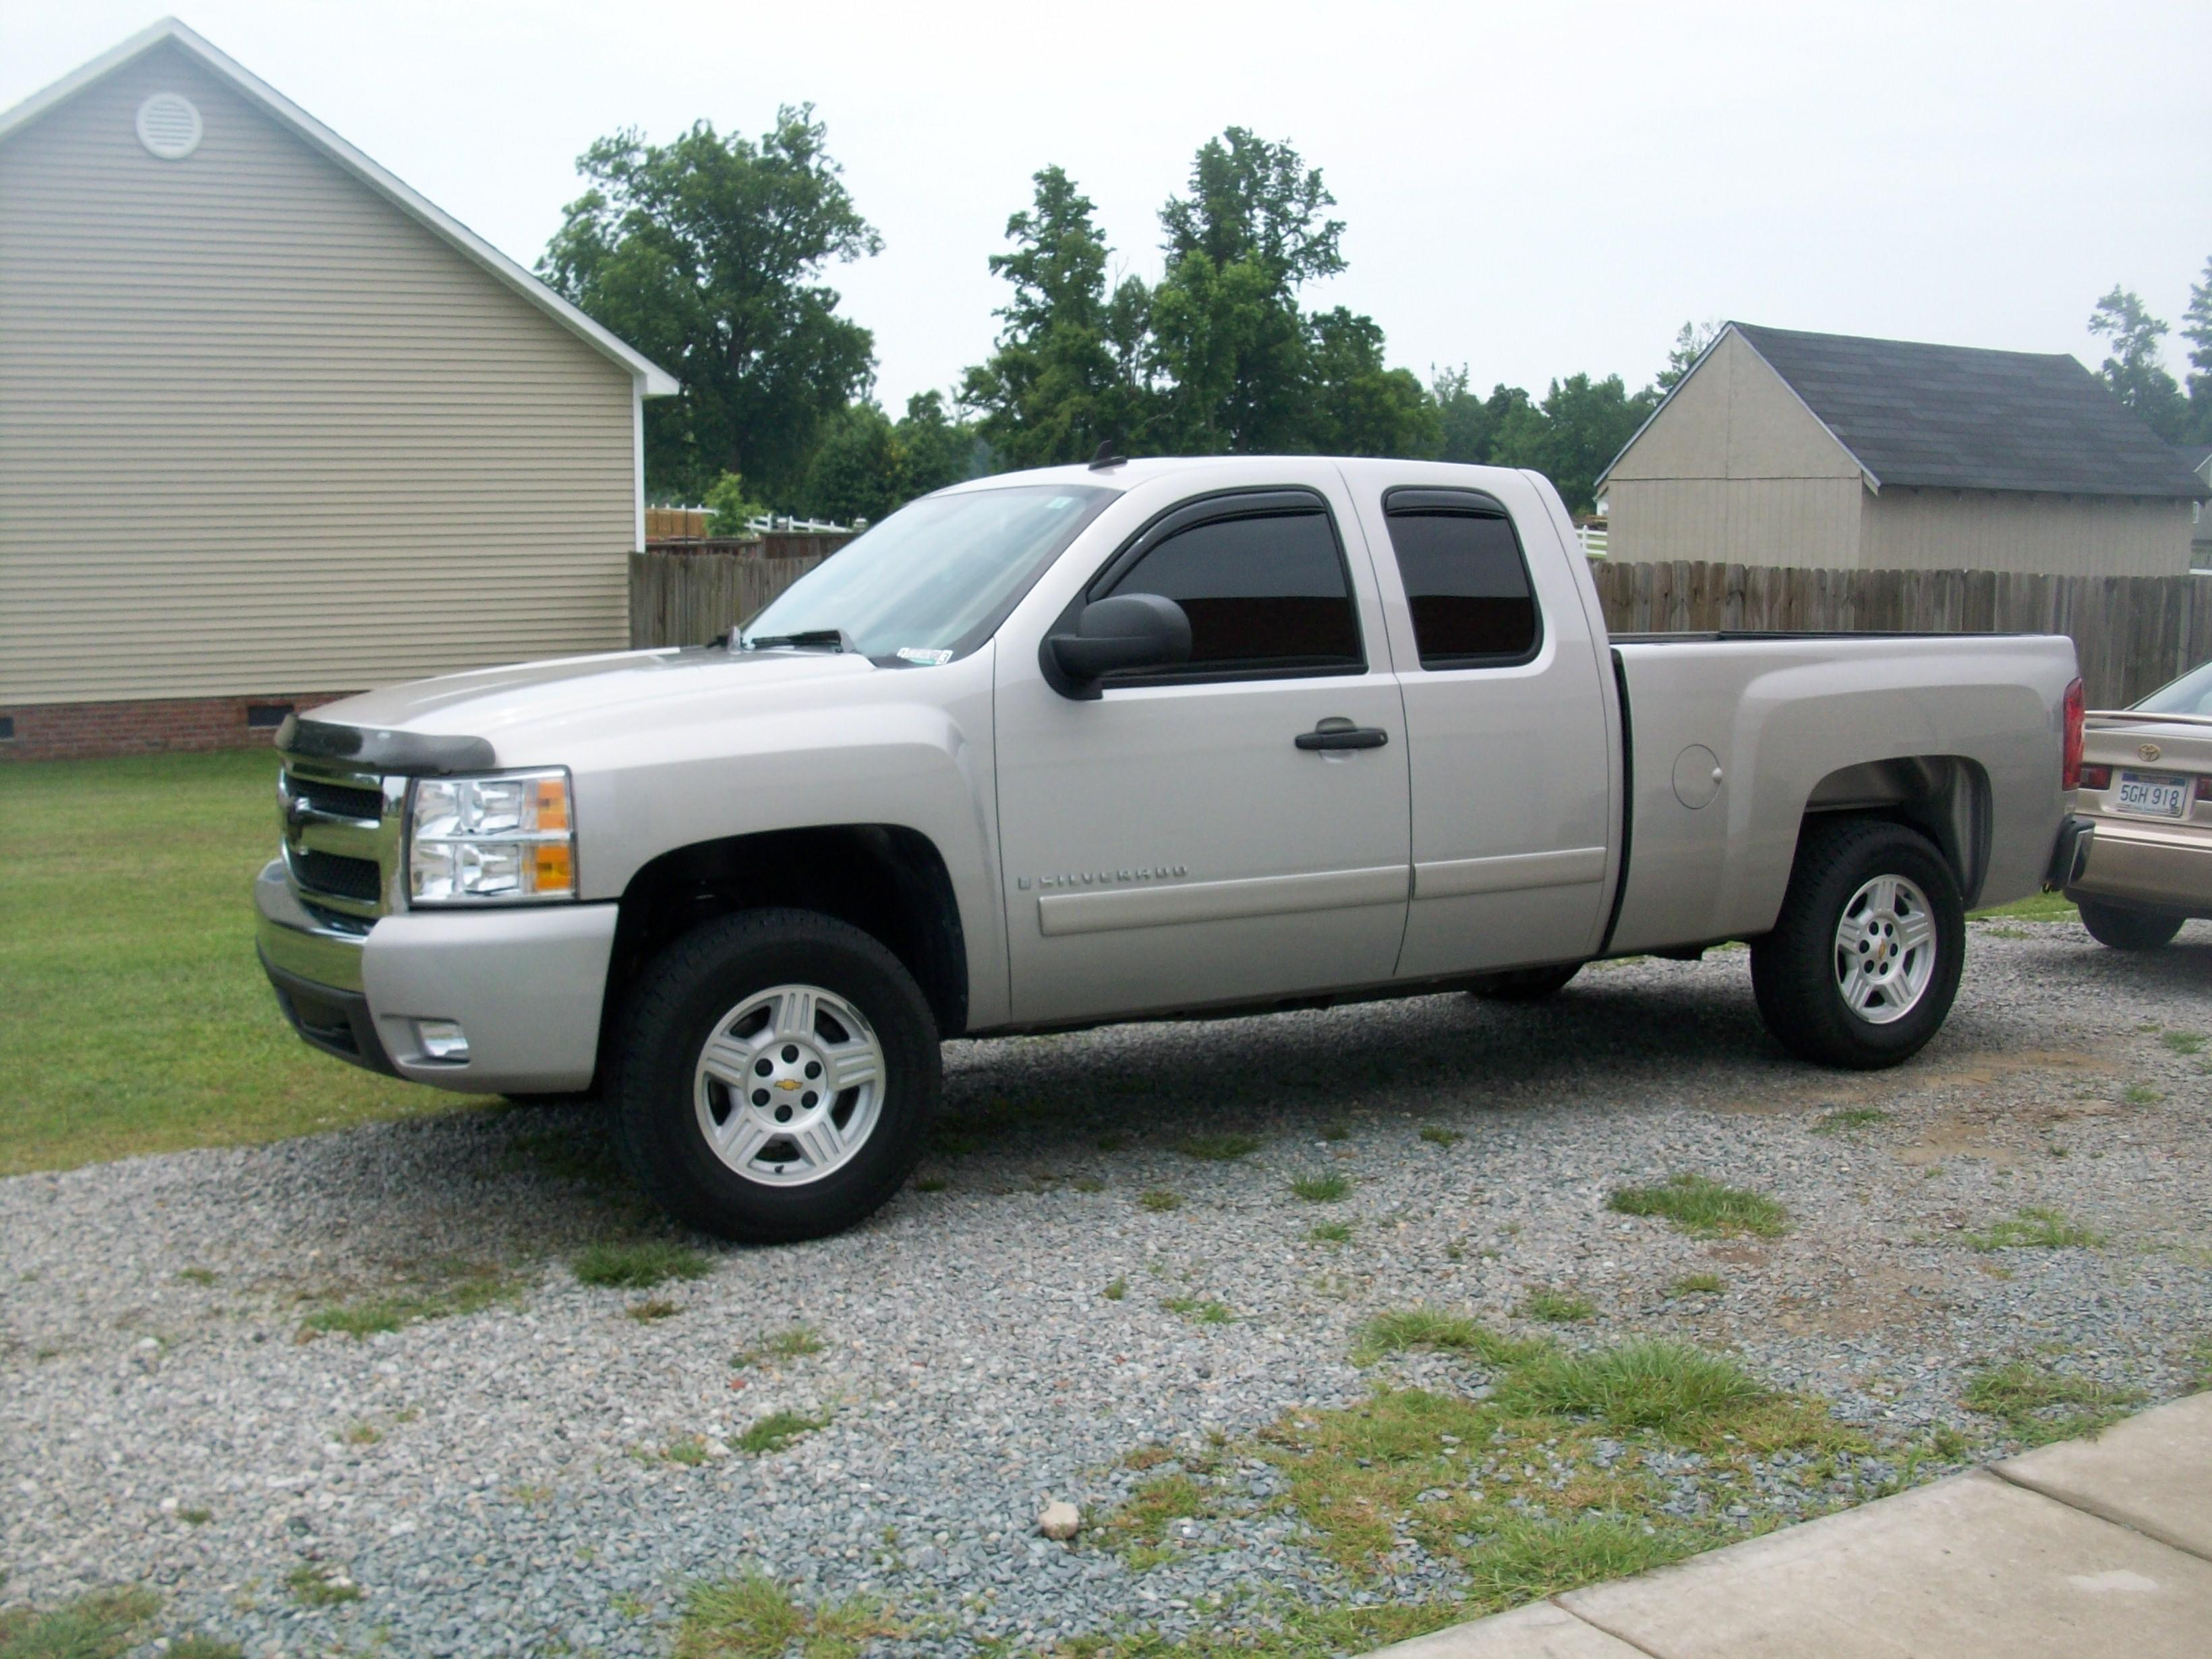 nc quadking 39 s 2008 chevrolet silverado 1500 extended cab in wilmington nc. Black Bedroom Furniture Sets. Home Design Ideas